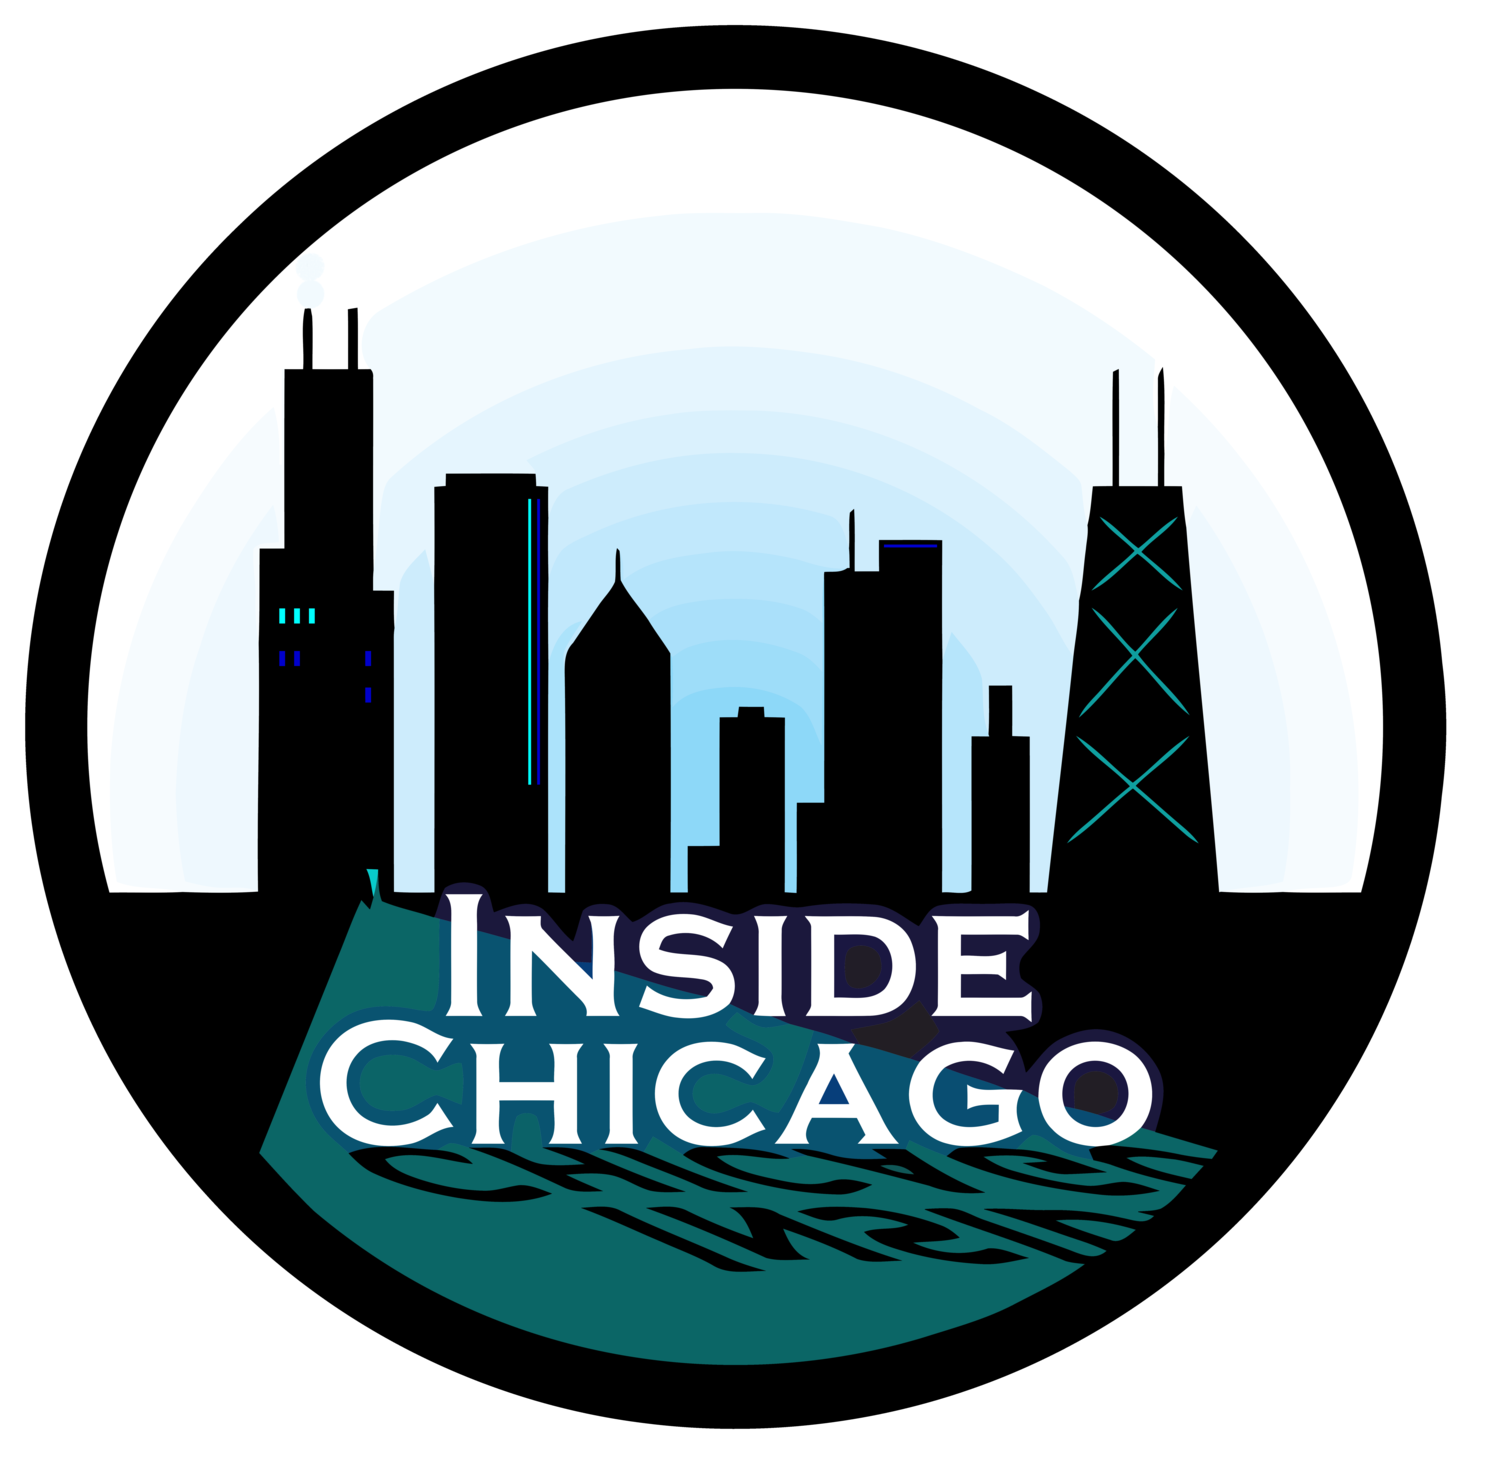 Inside Chicago Walking Tours | Best Architecture Tours in Chicago